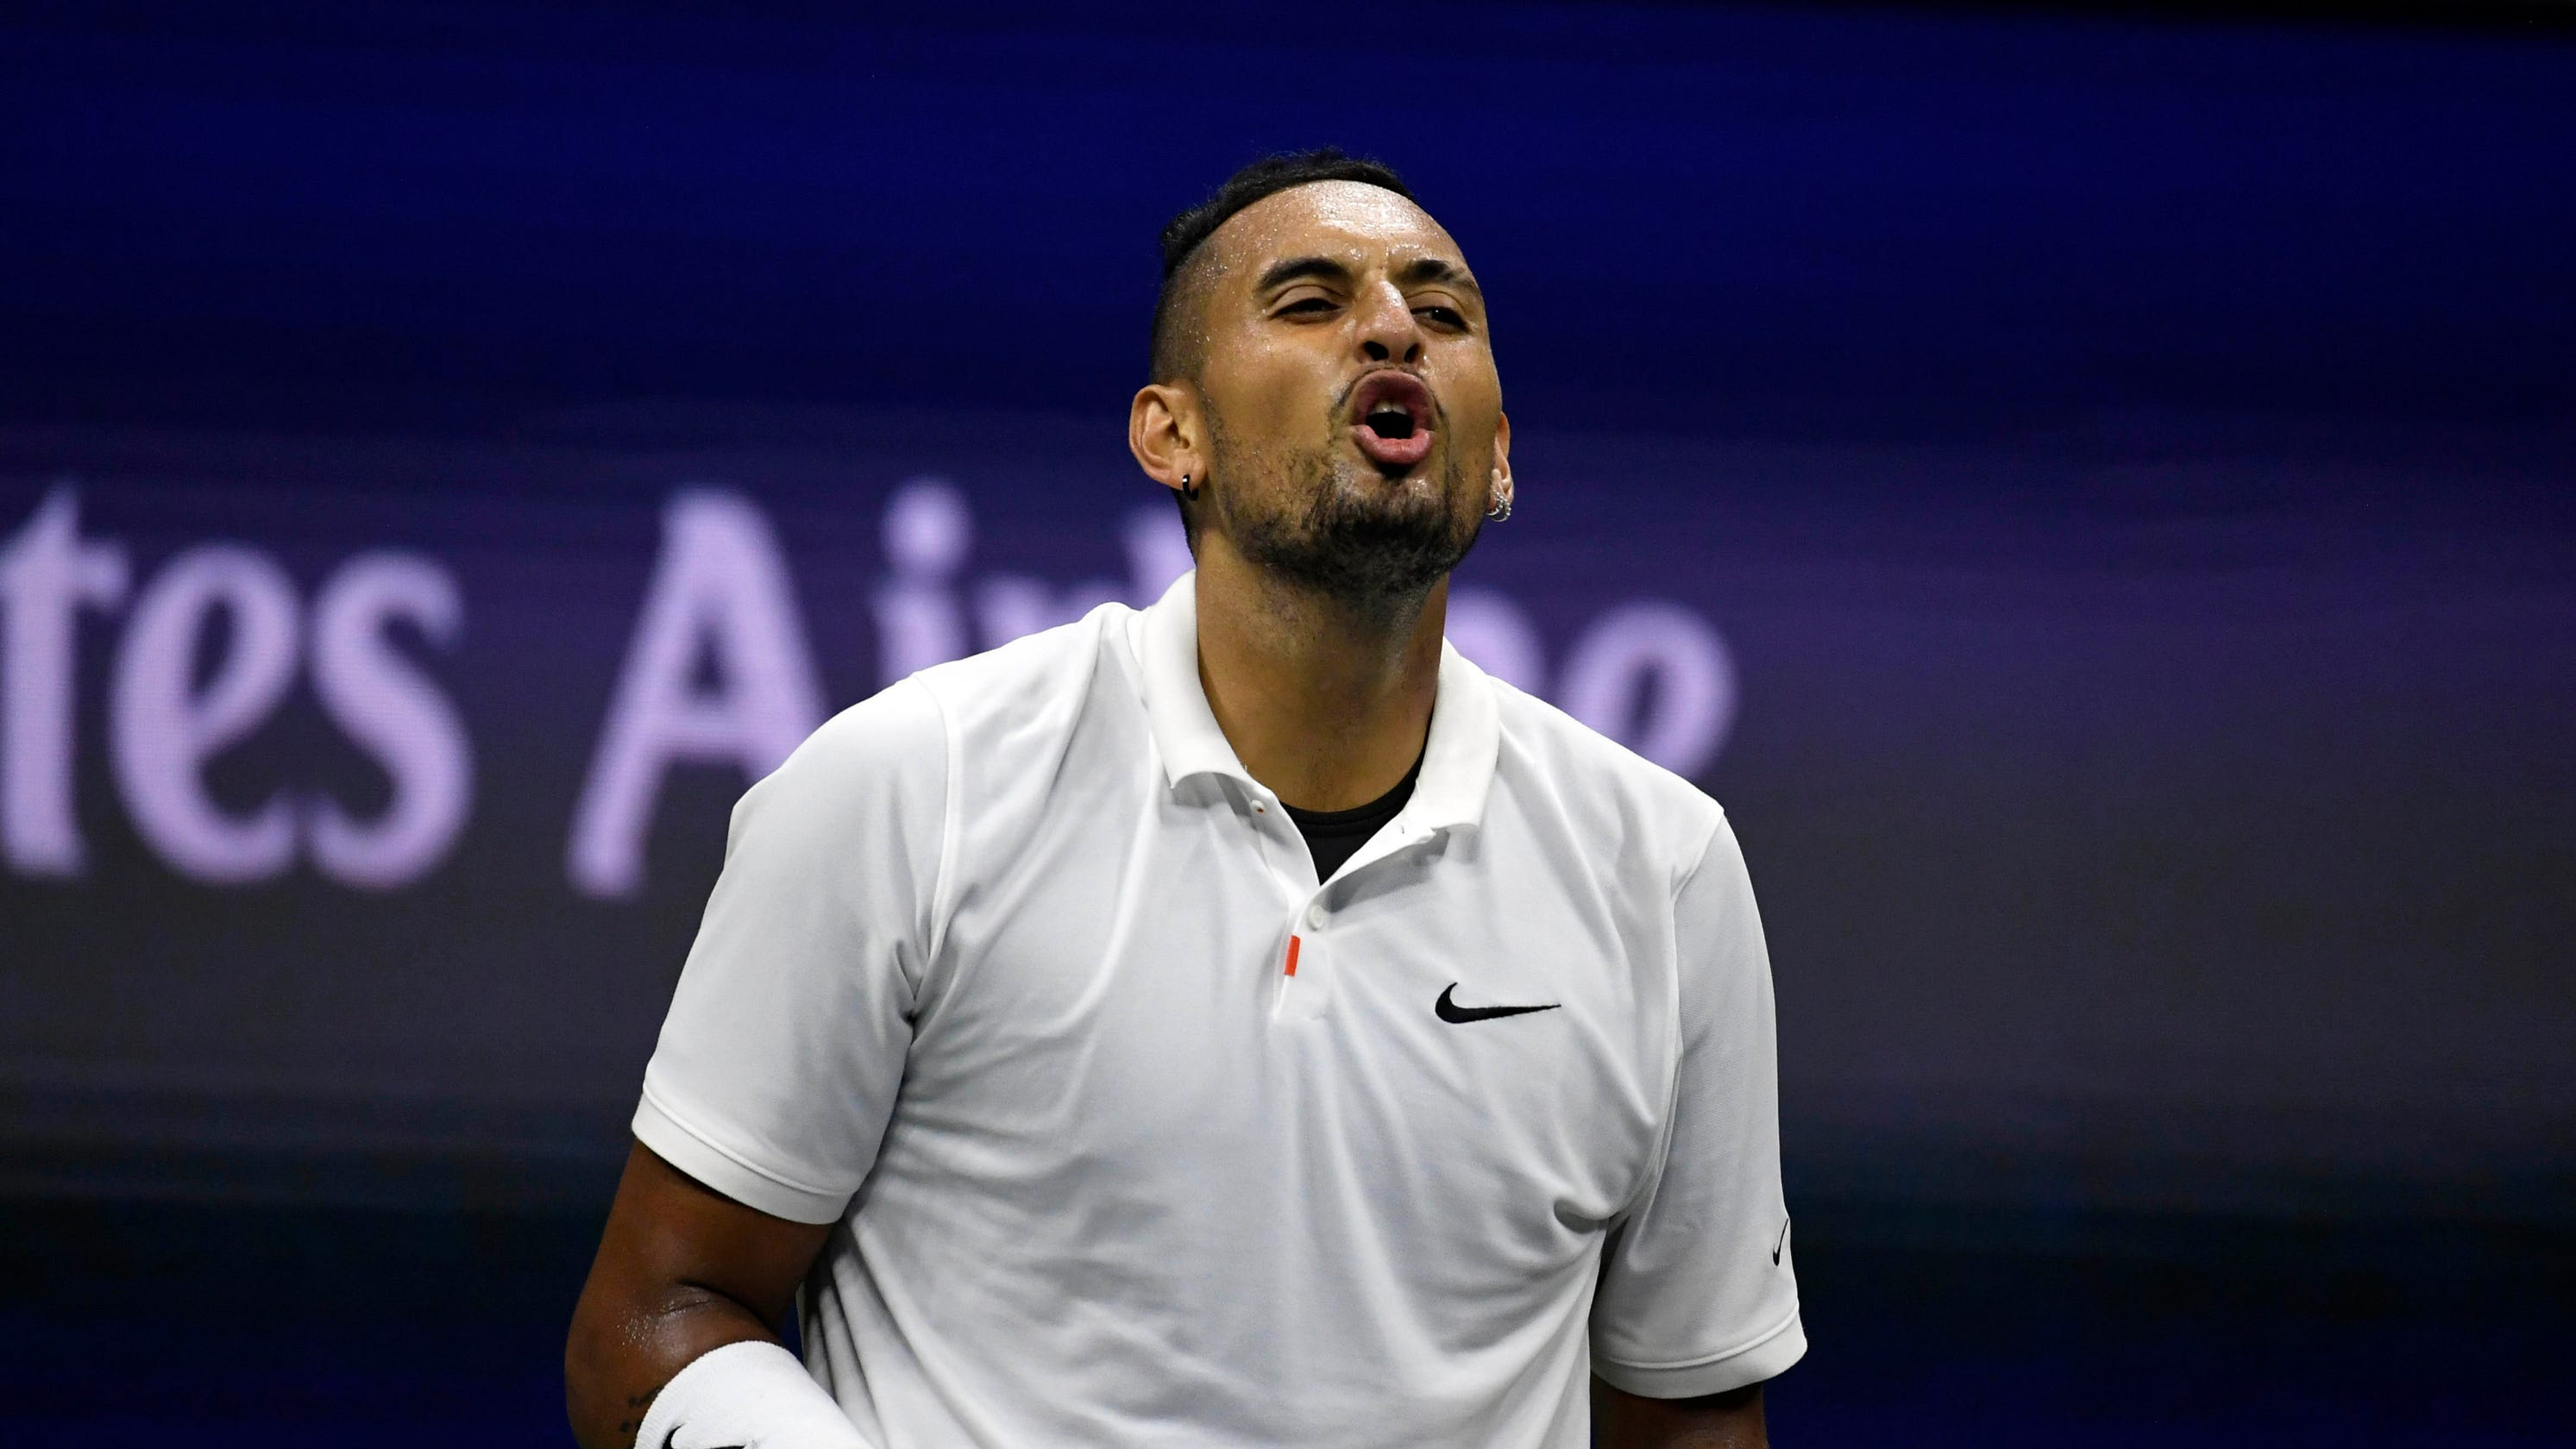 Nick Kyrgios calls Boris Becker a 'doughnut' in exchange of verbal blows on Twitter